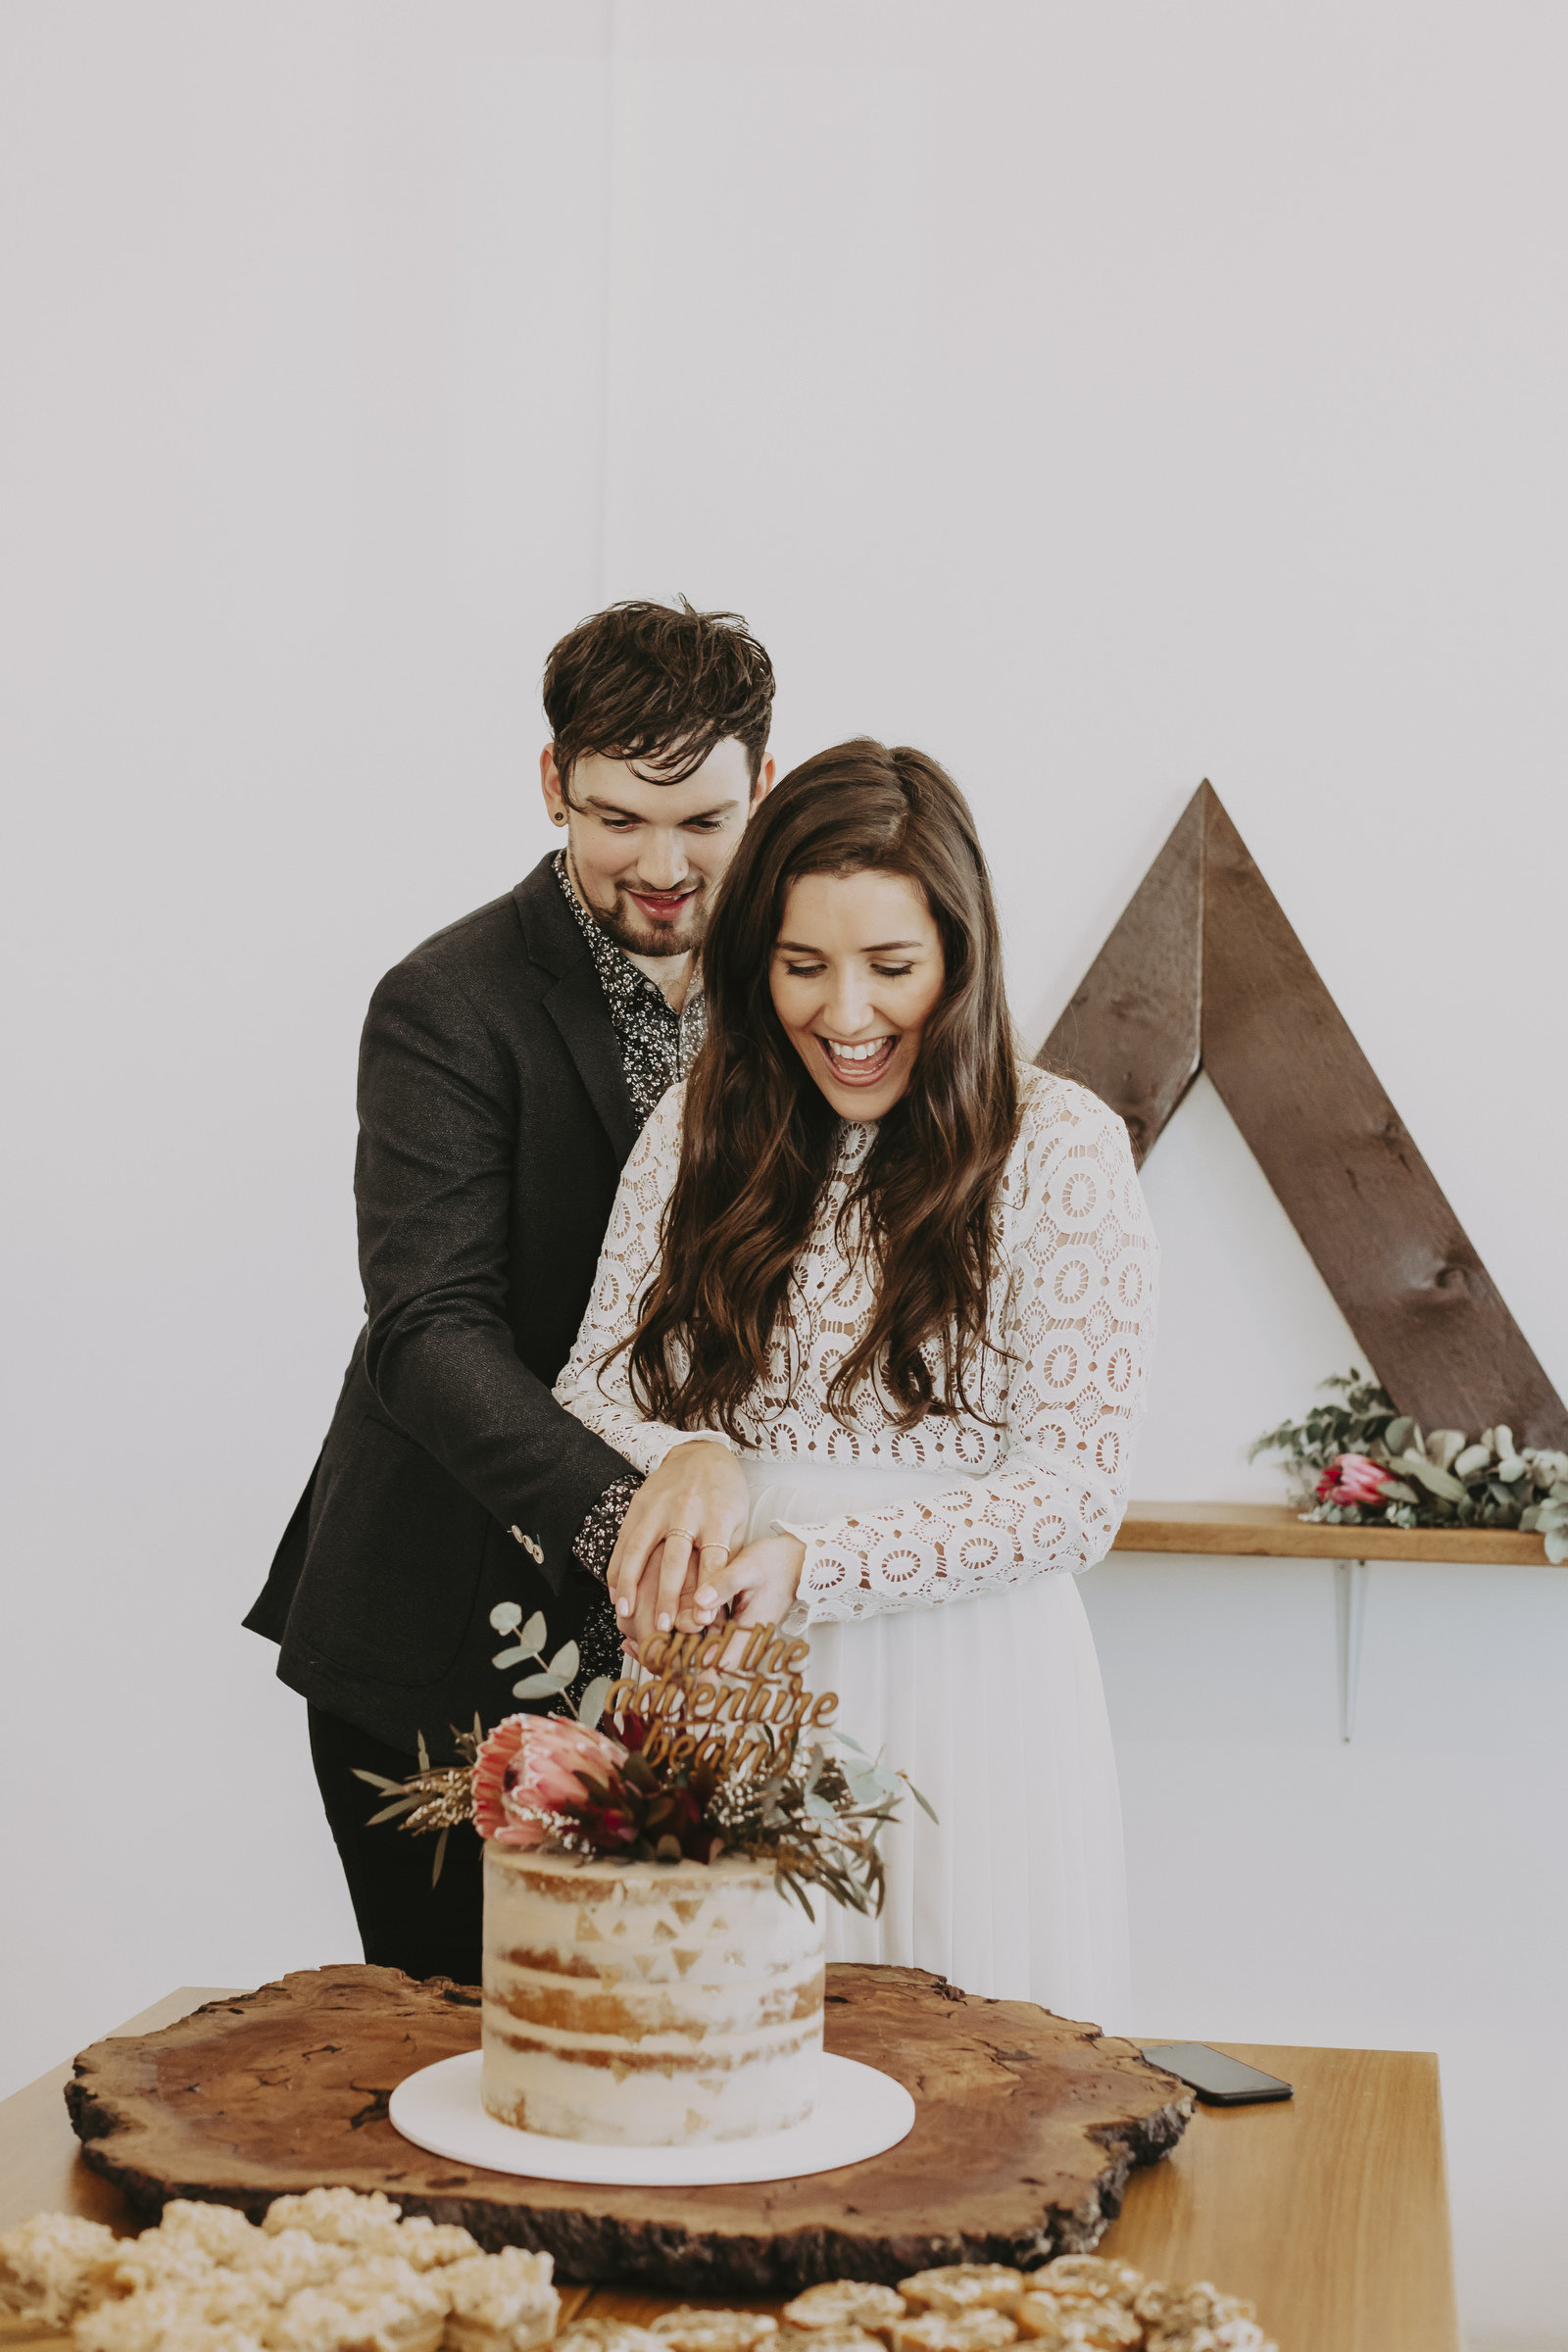 athena-and-camron-sydney-wedding-boho-romance-james-simmons-photography-christian-couple-goals81